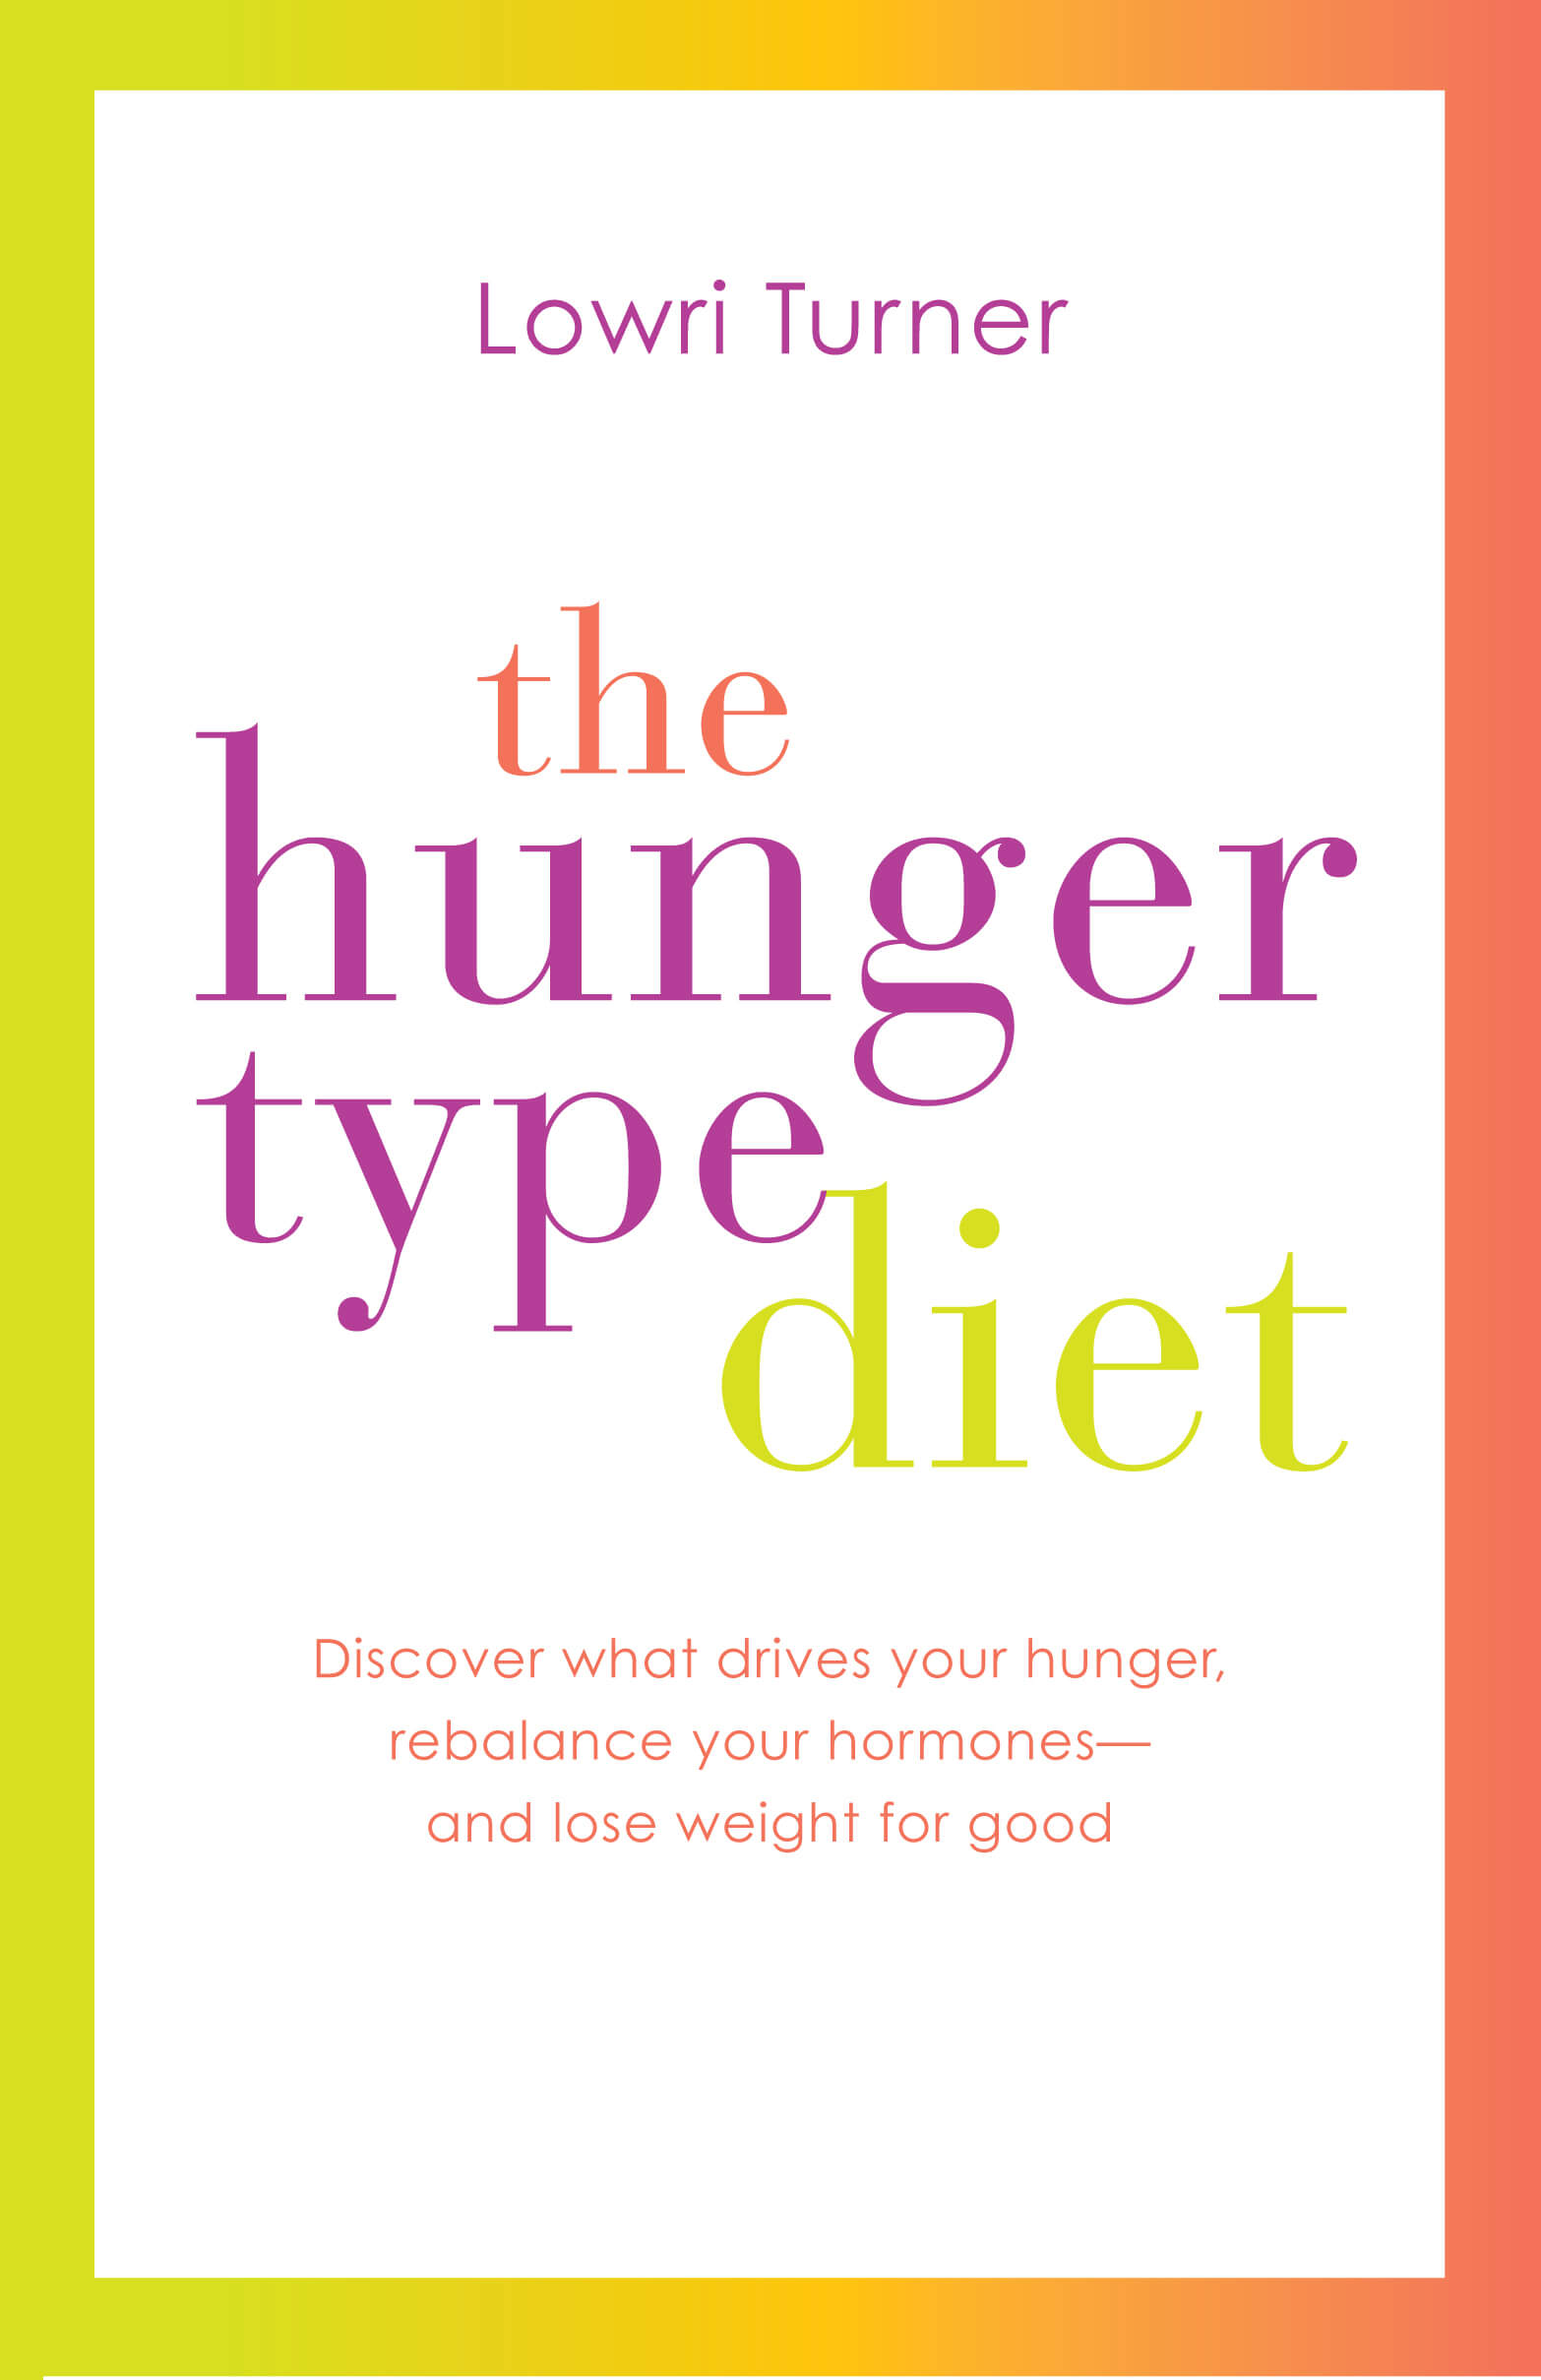 The Hunger Type Diet by Lowri Turner (Digital Edition) - Nourishbooks